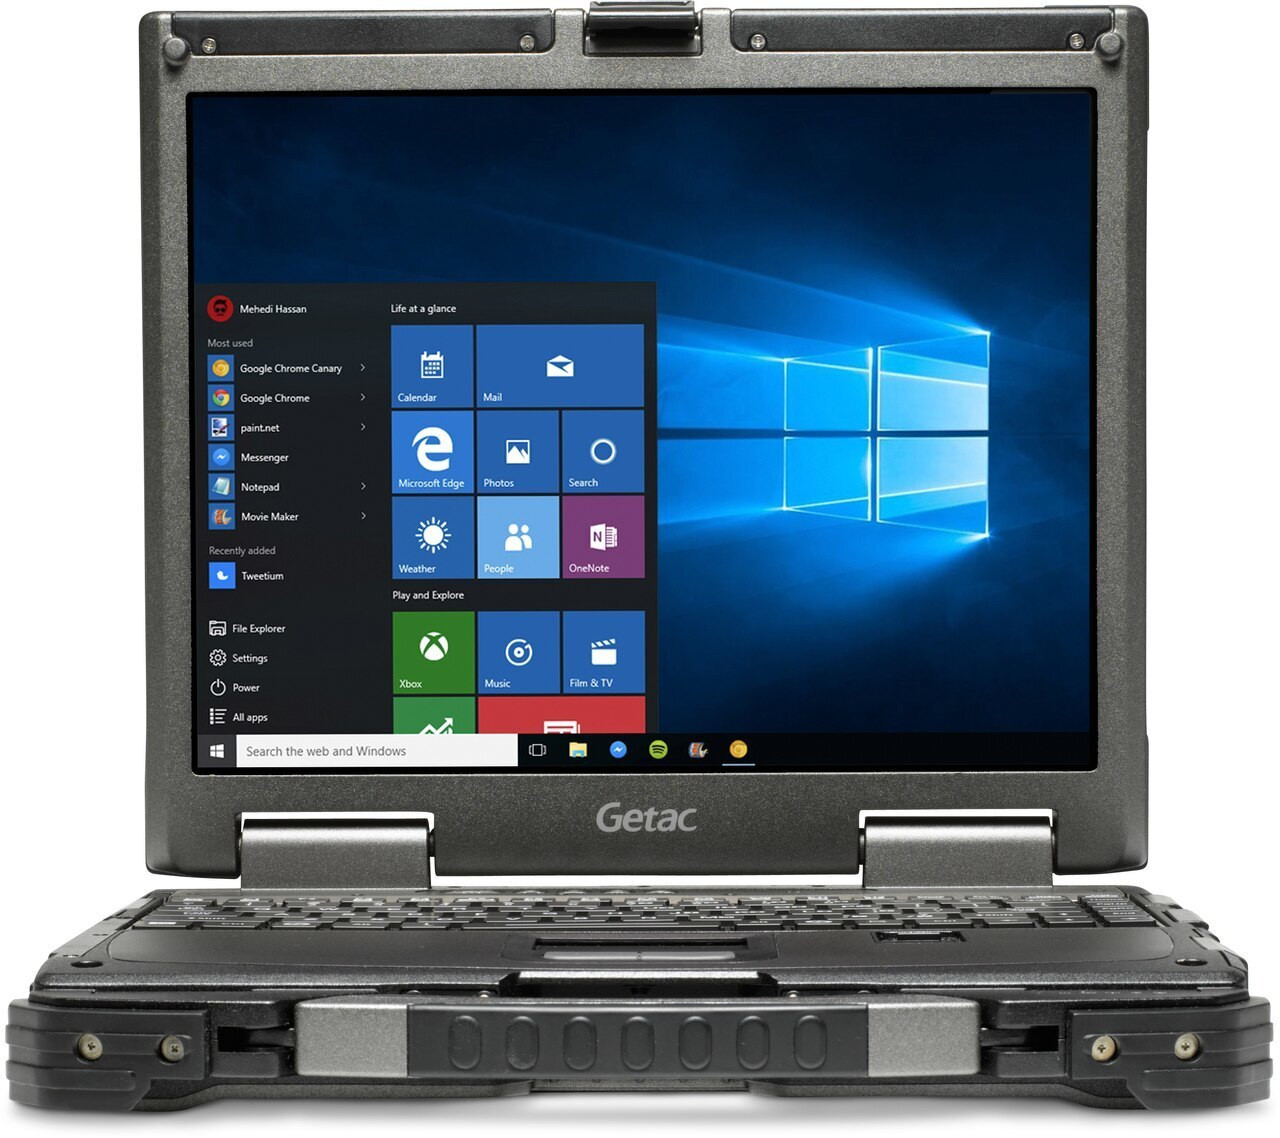 """Getac B300 G7 ,Intel Core i5-8250U Processor 1.6GHz,13.3"""" (Without Webcam),Win10 Pro x64 with 8GB RAM ,256GB SSD,Sunlight Readable (LCD+Touchscreen),US KBD,Membrane Backlit KBD,Wifi+BT+GPS+Passthrough,HDMI,PCMCIA, Express Card 54, SD Card Reader, TPM"""